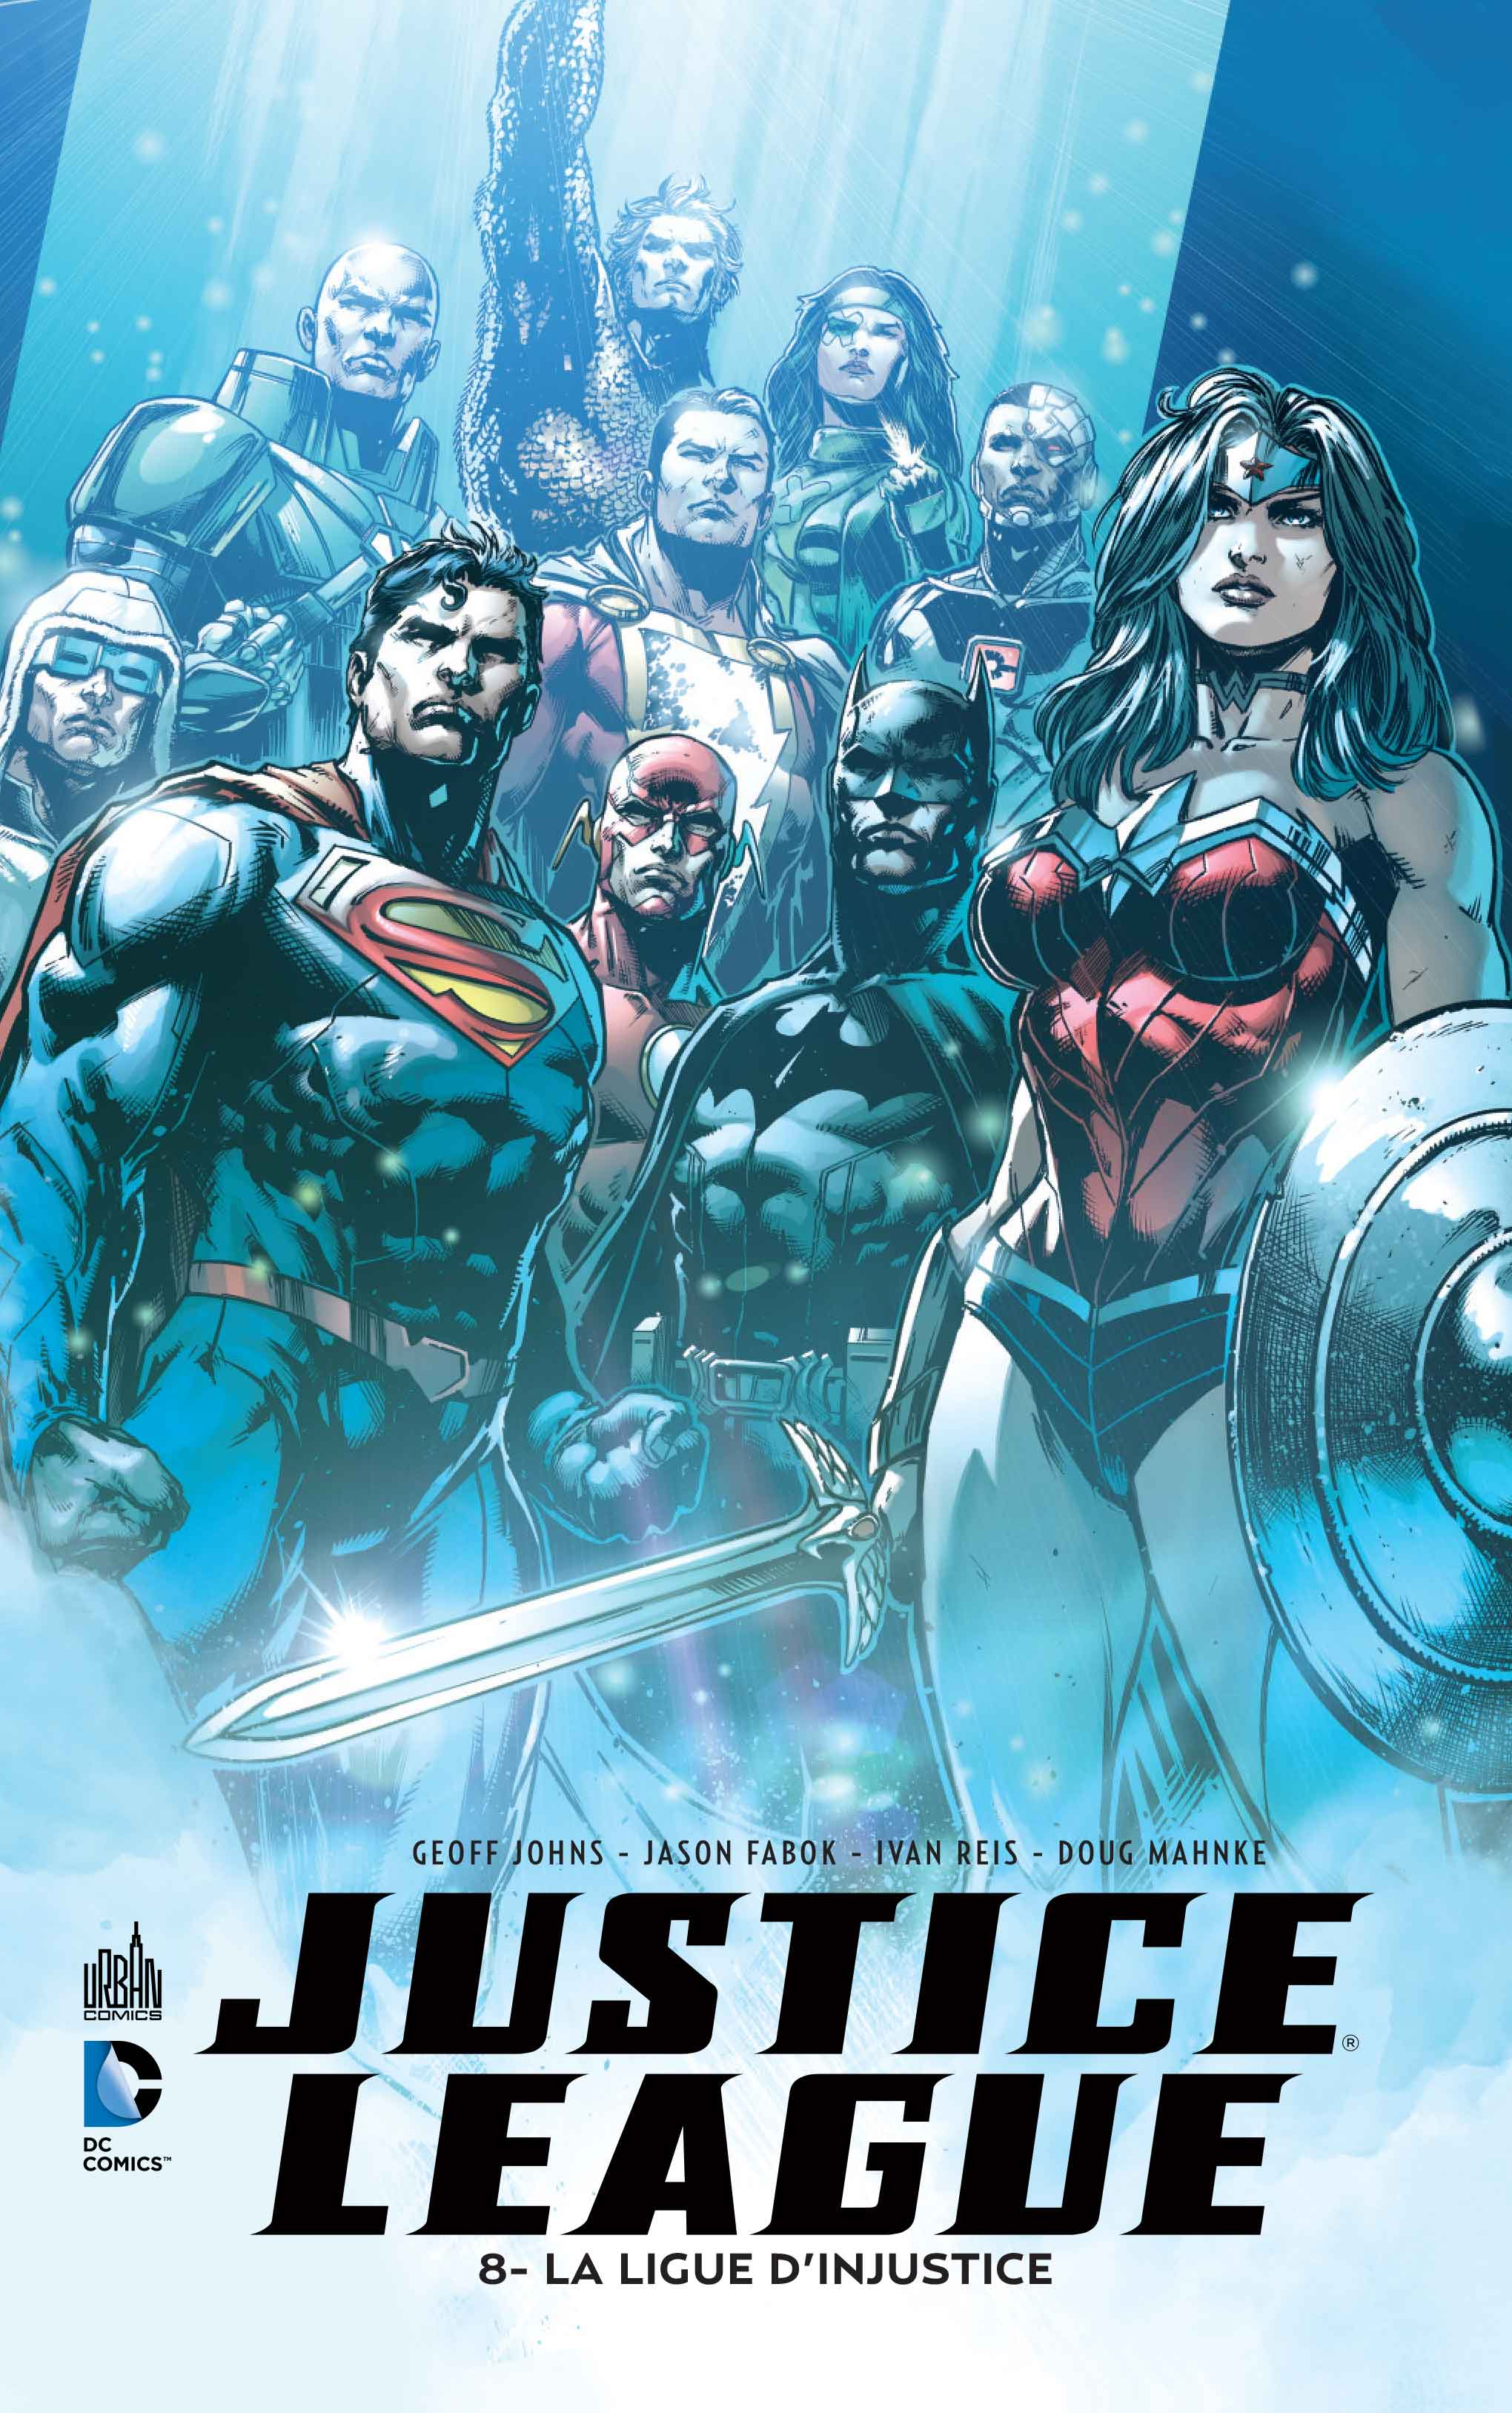 Justice League 8 - La ligue d'injustice